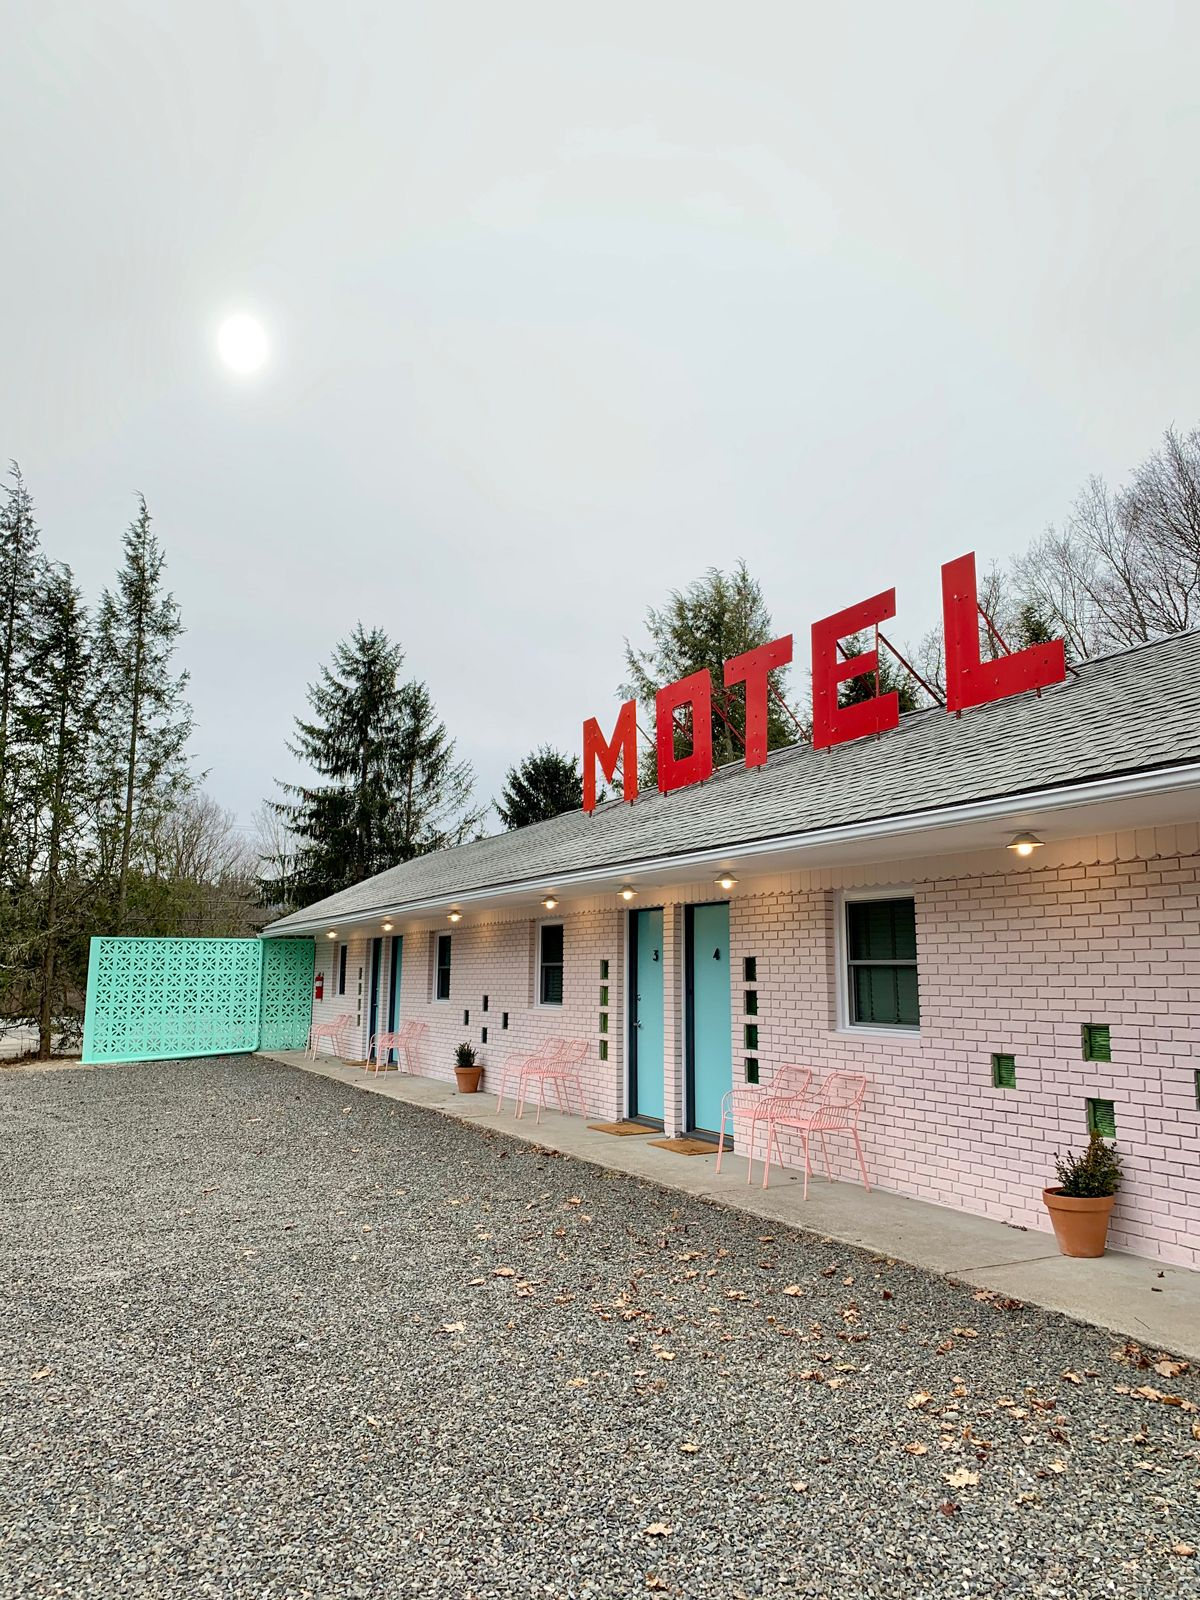 Starlite Motel Is the 60s-Inspired Catskills Retreat Instagrammers Dream Of